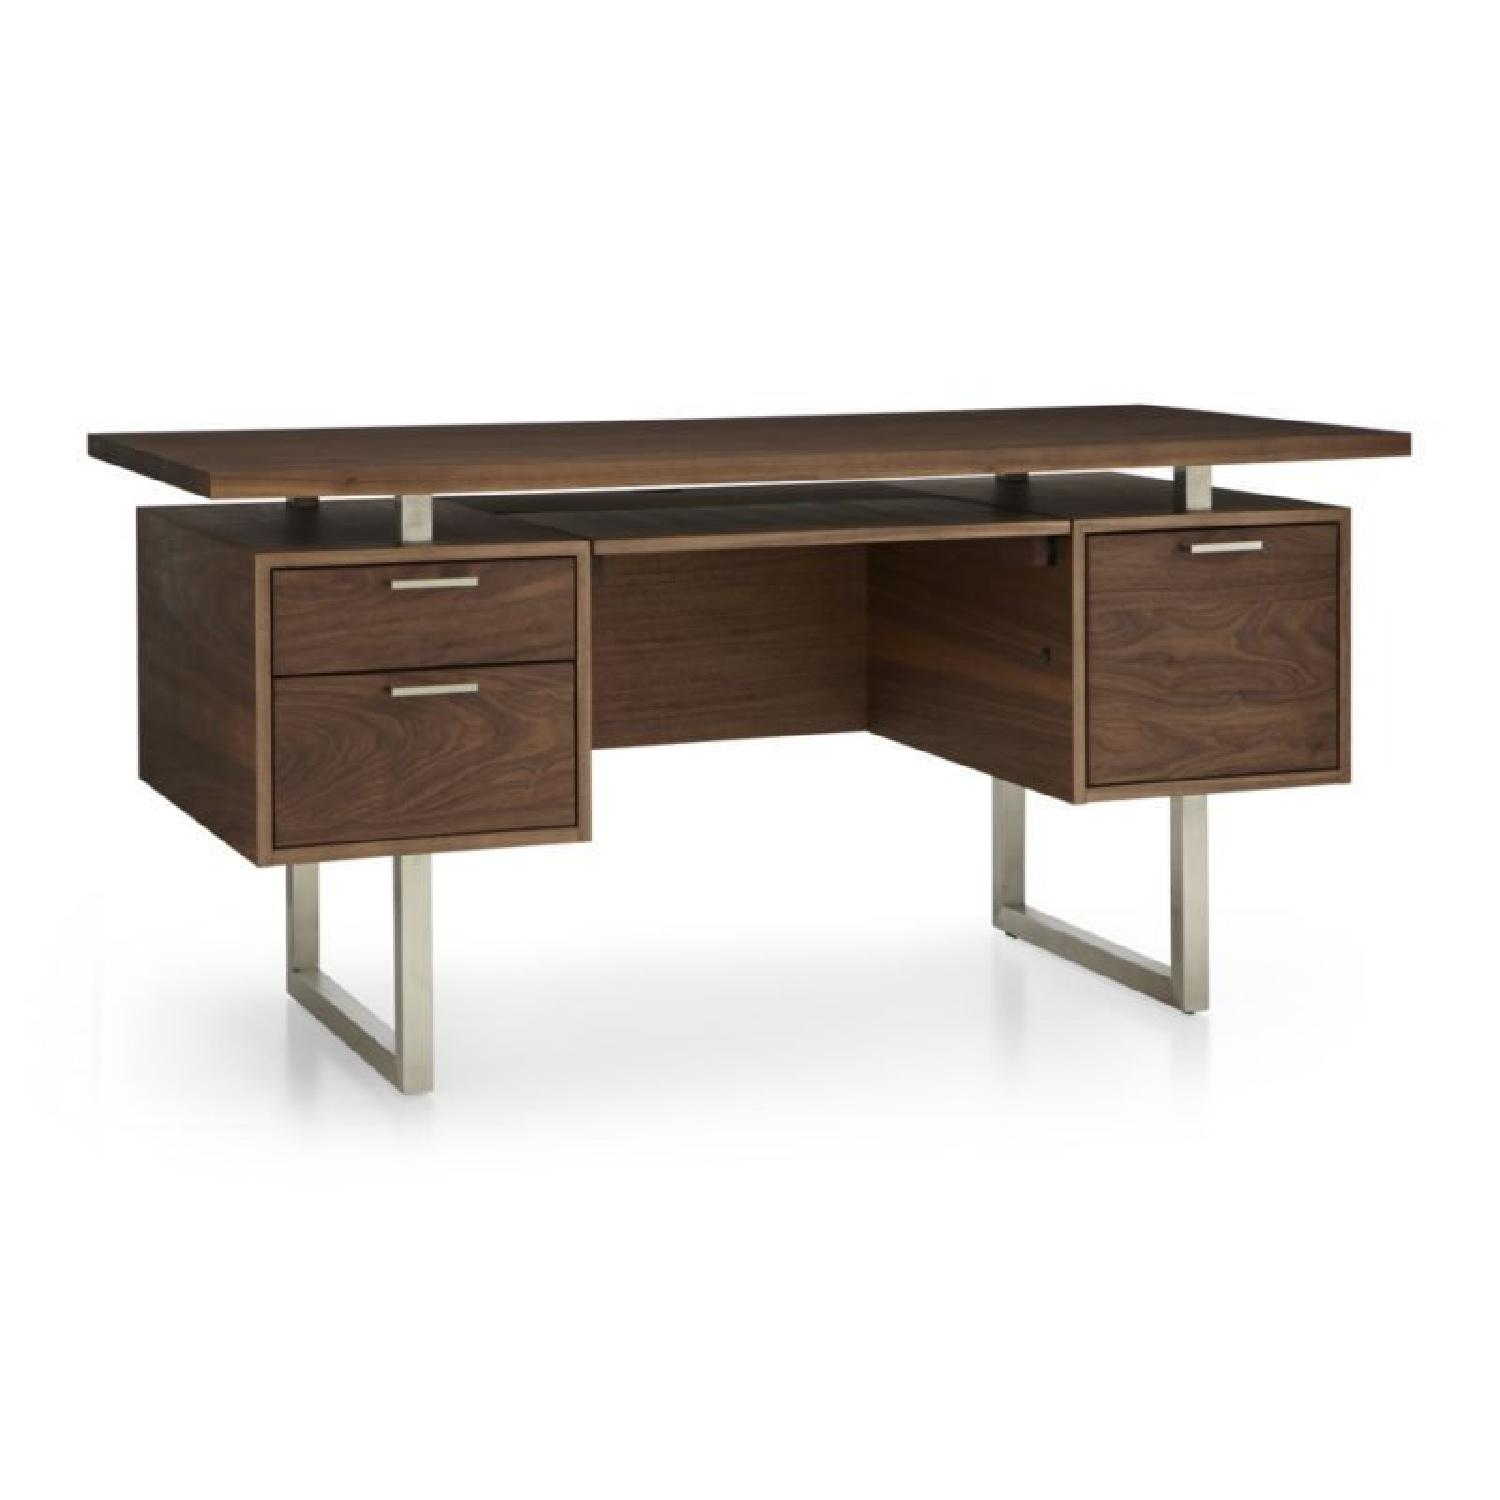 Crate & Barrel Clybourn Desk - image-0